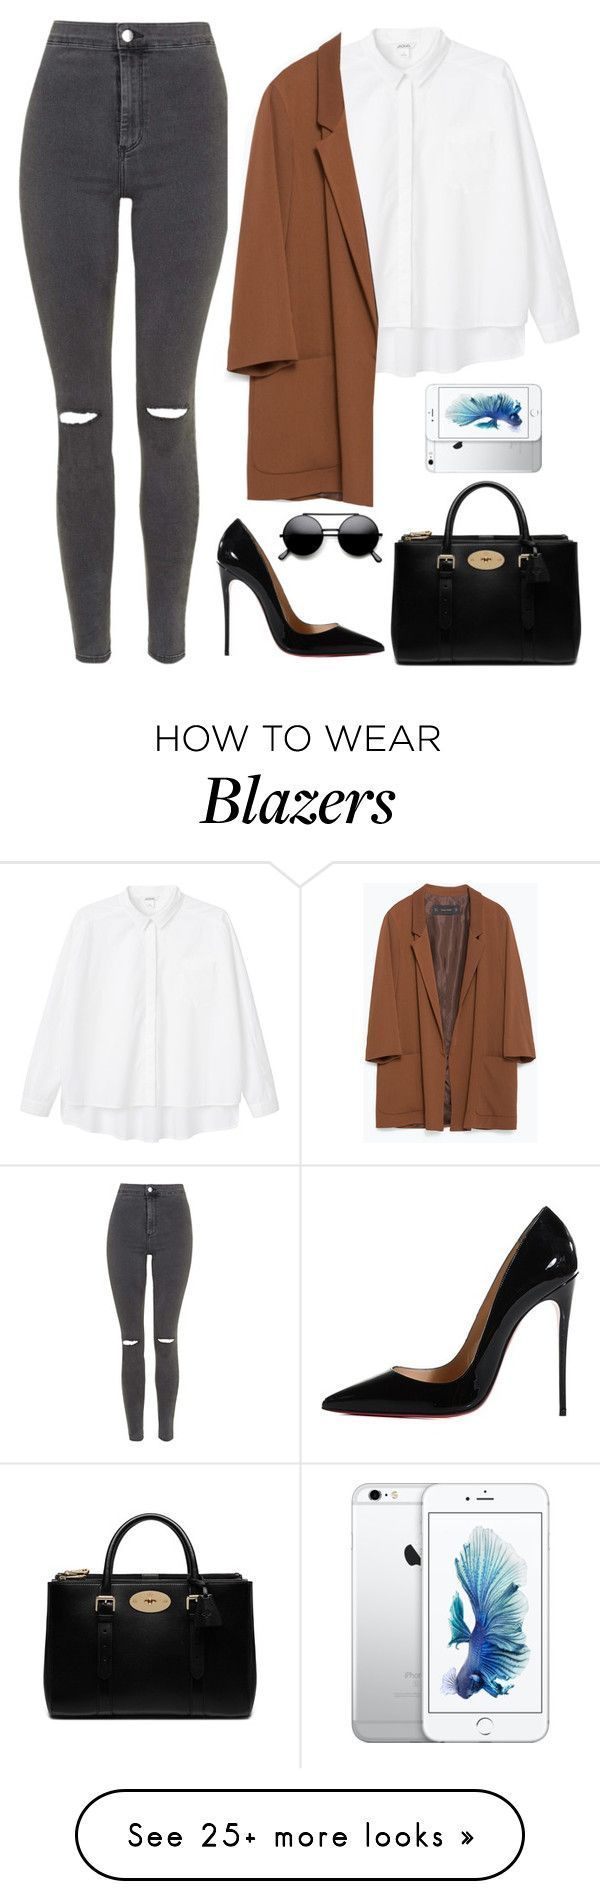 """""""Untitled #464"""" by lelephant on Polyvore featuring Topshop, Christian Louboutin, Monki, Zara and Mulberry"""